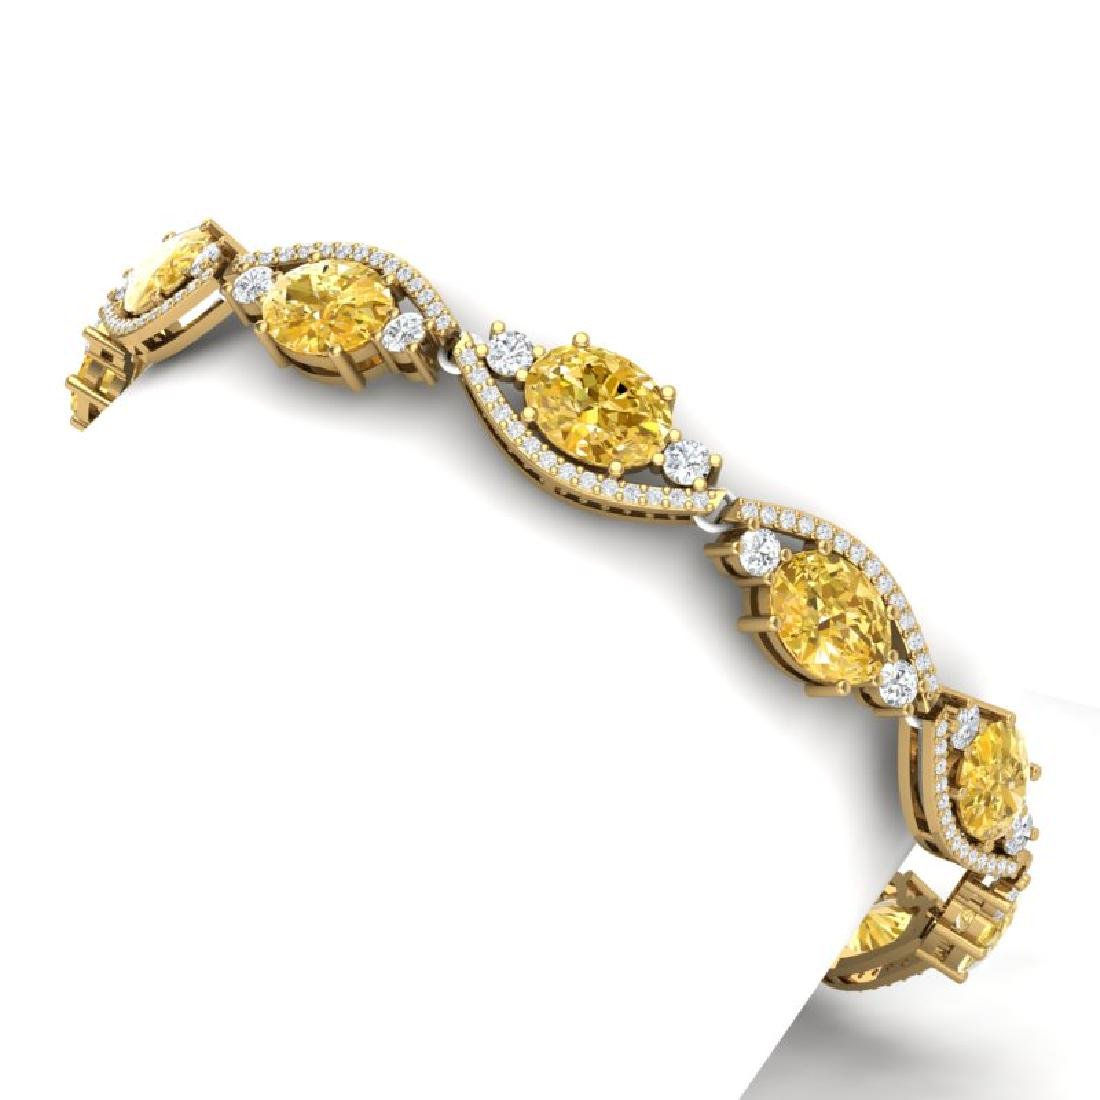 18.3 CTW Royalty Canary Citrine & VS Diamond Bracelet - 2